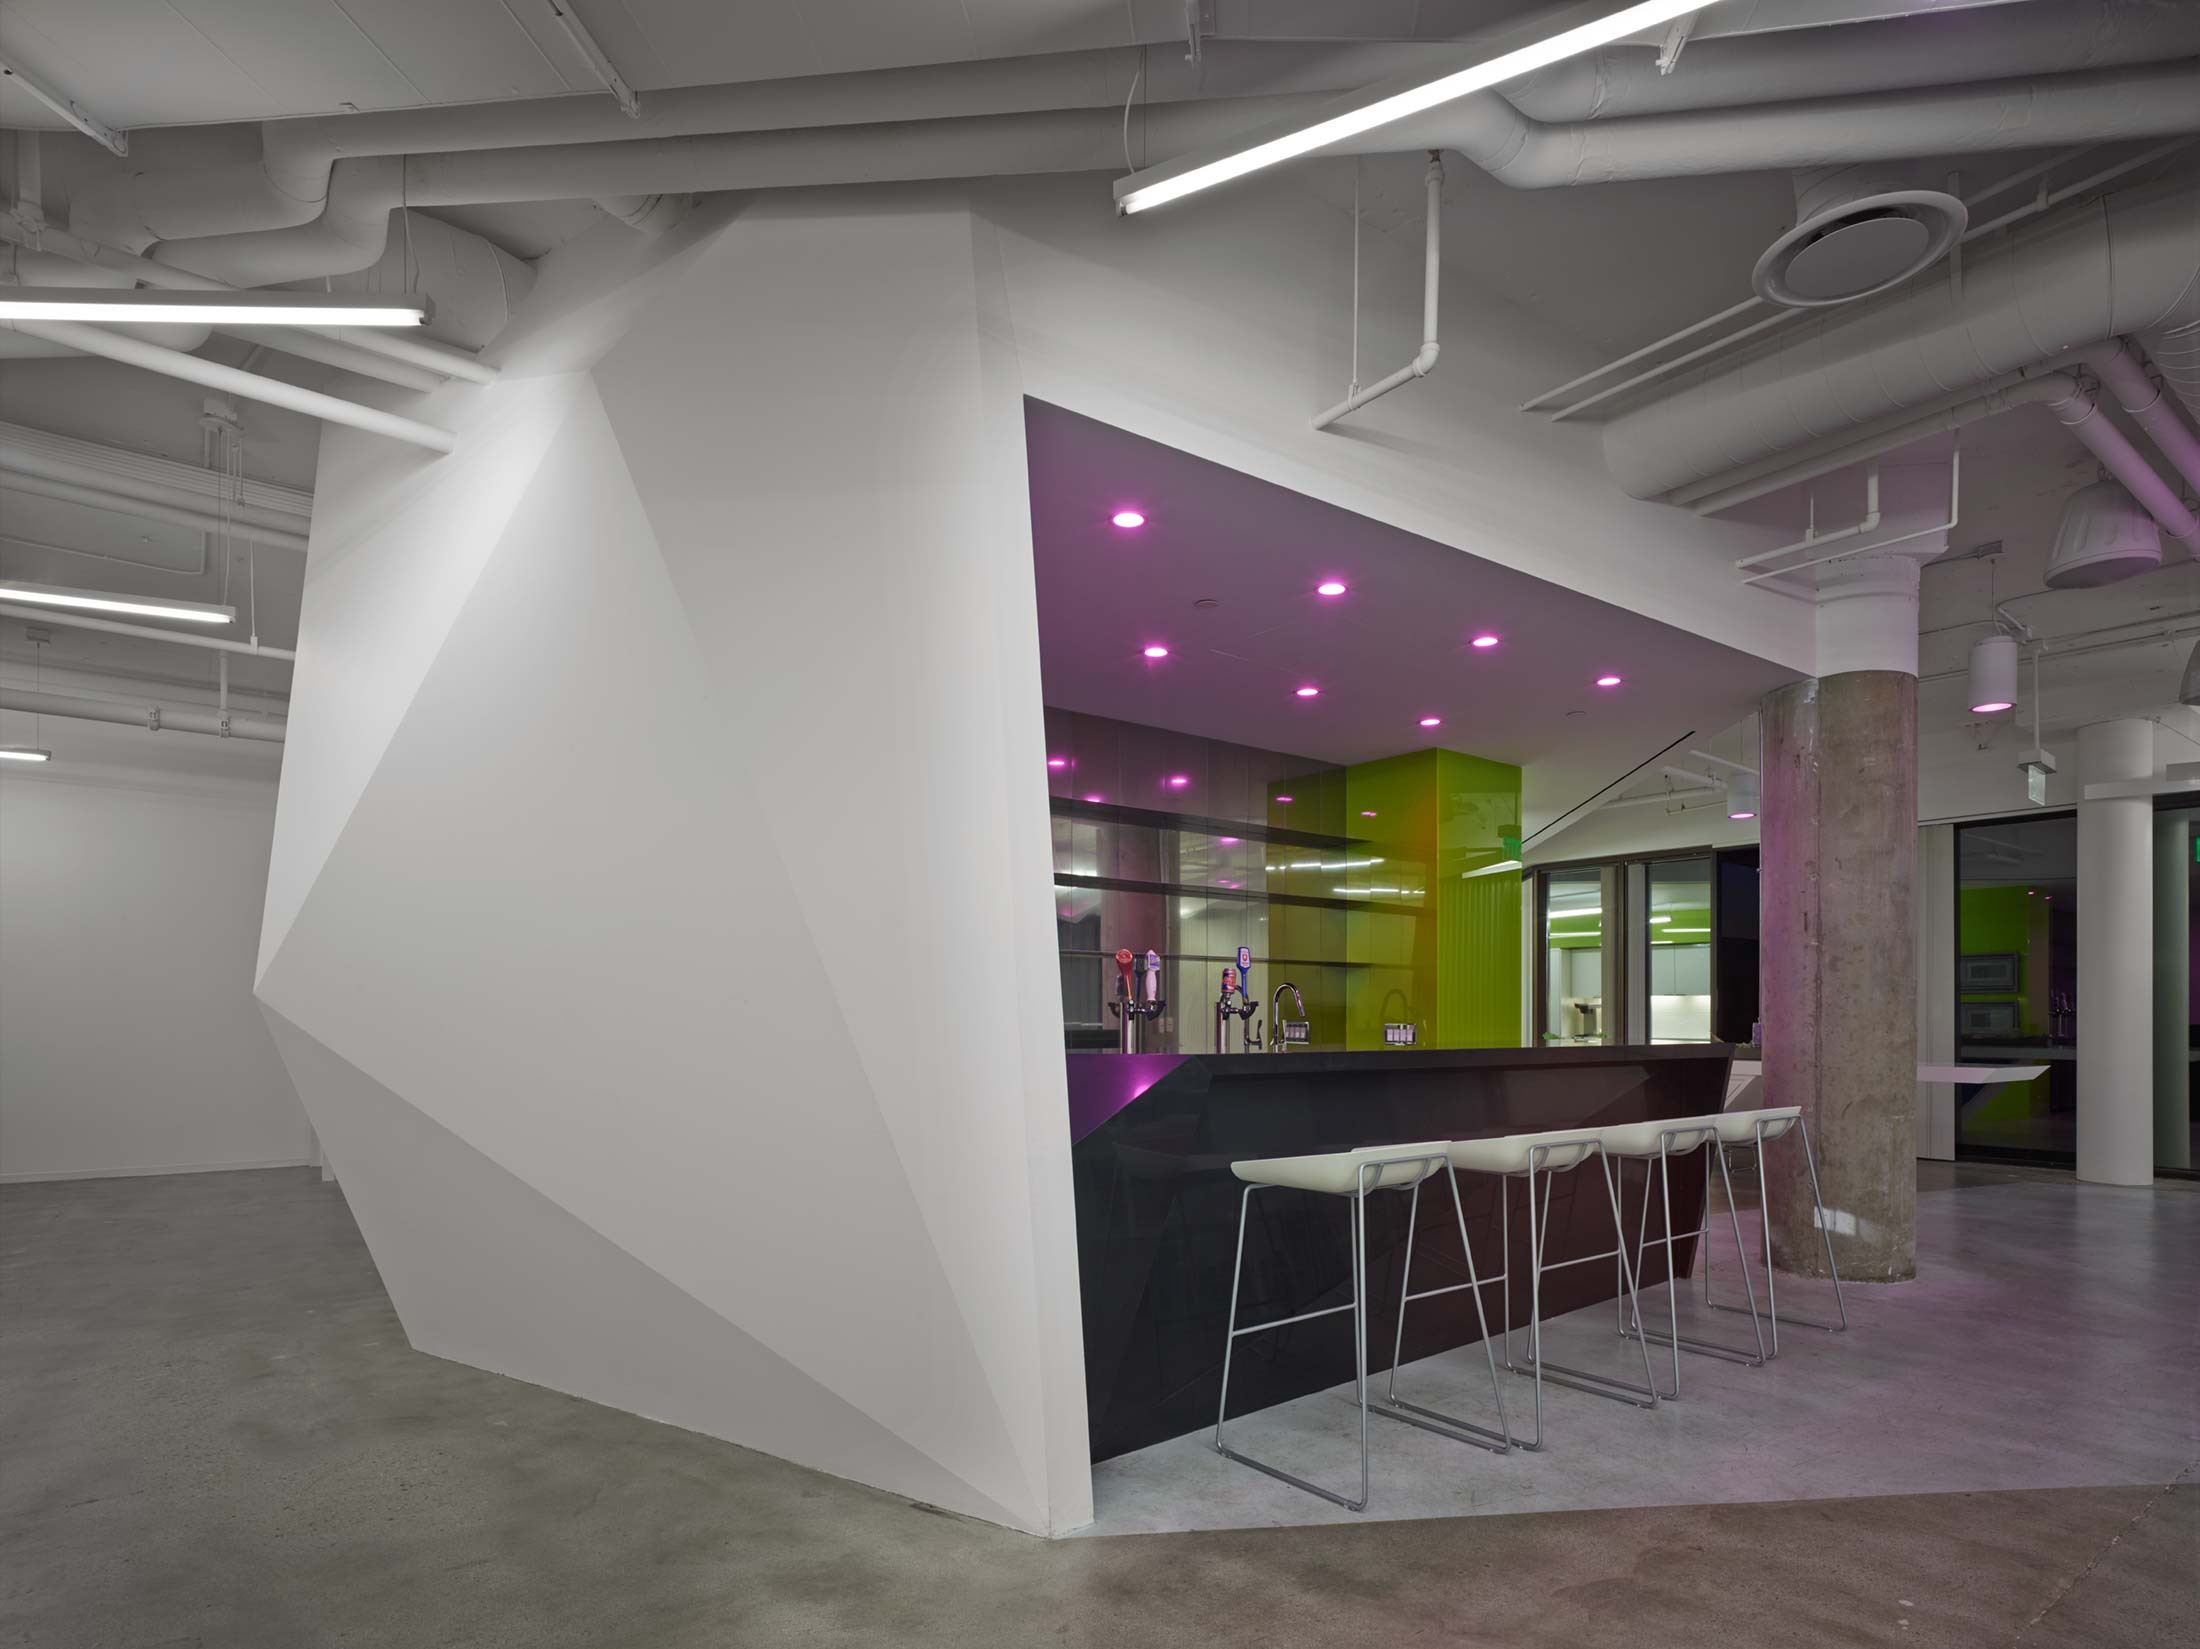 modern-architecture-commercial-interiors-workspace-bar-california-shubindonaldson-conill-advertising-1